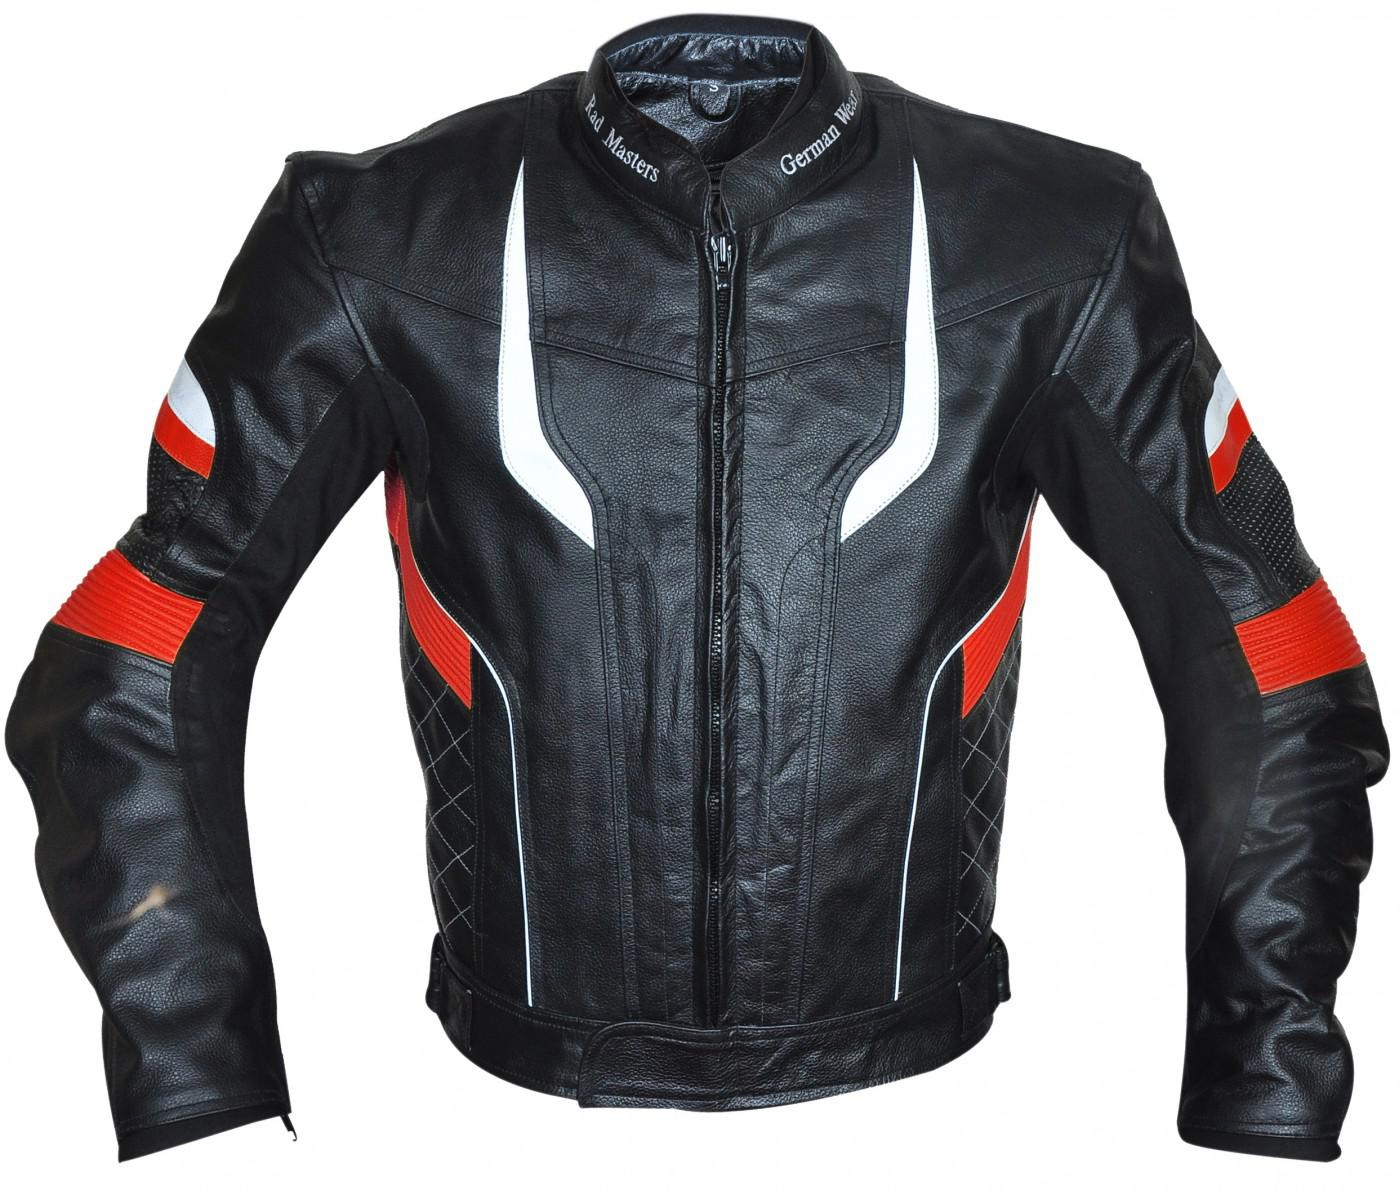 motorradjacke lederjacke chopperjacke cruiser jacke 4x. Black Bedroom Furniture Sets. Home Design Ideas